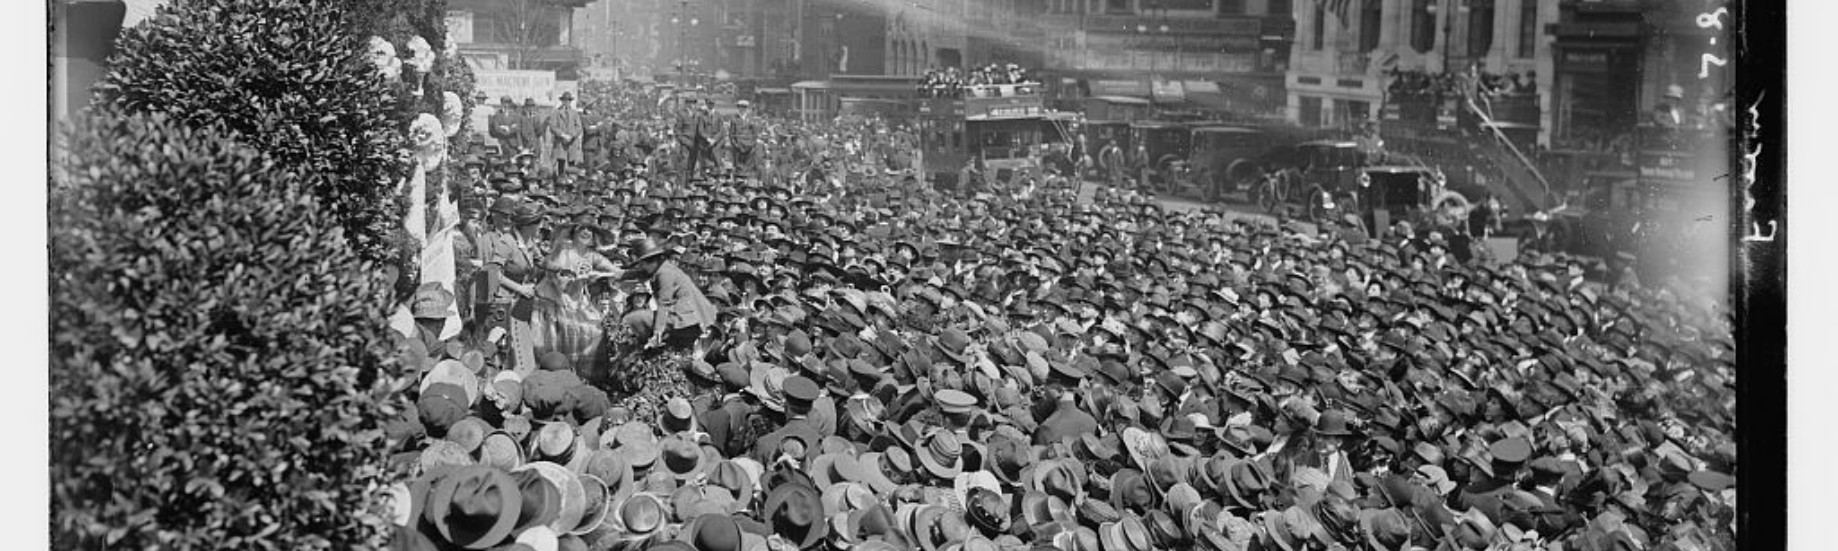 34d101773d2f6 How Cars and Hygiene Killed the Middle-Class Hat - Pulling at Threads -  Medium